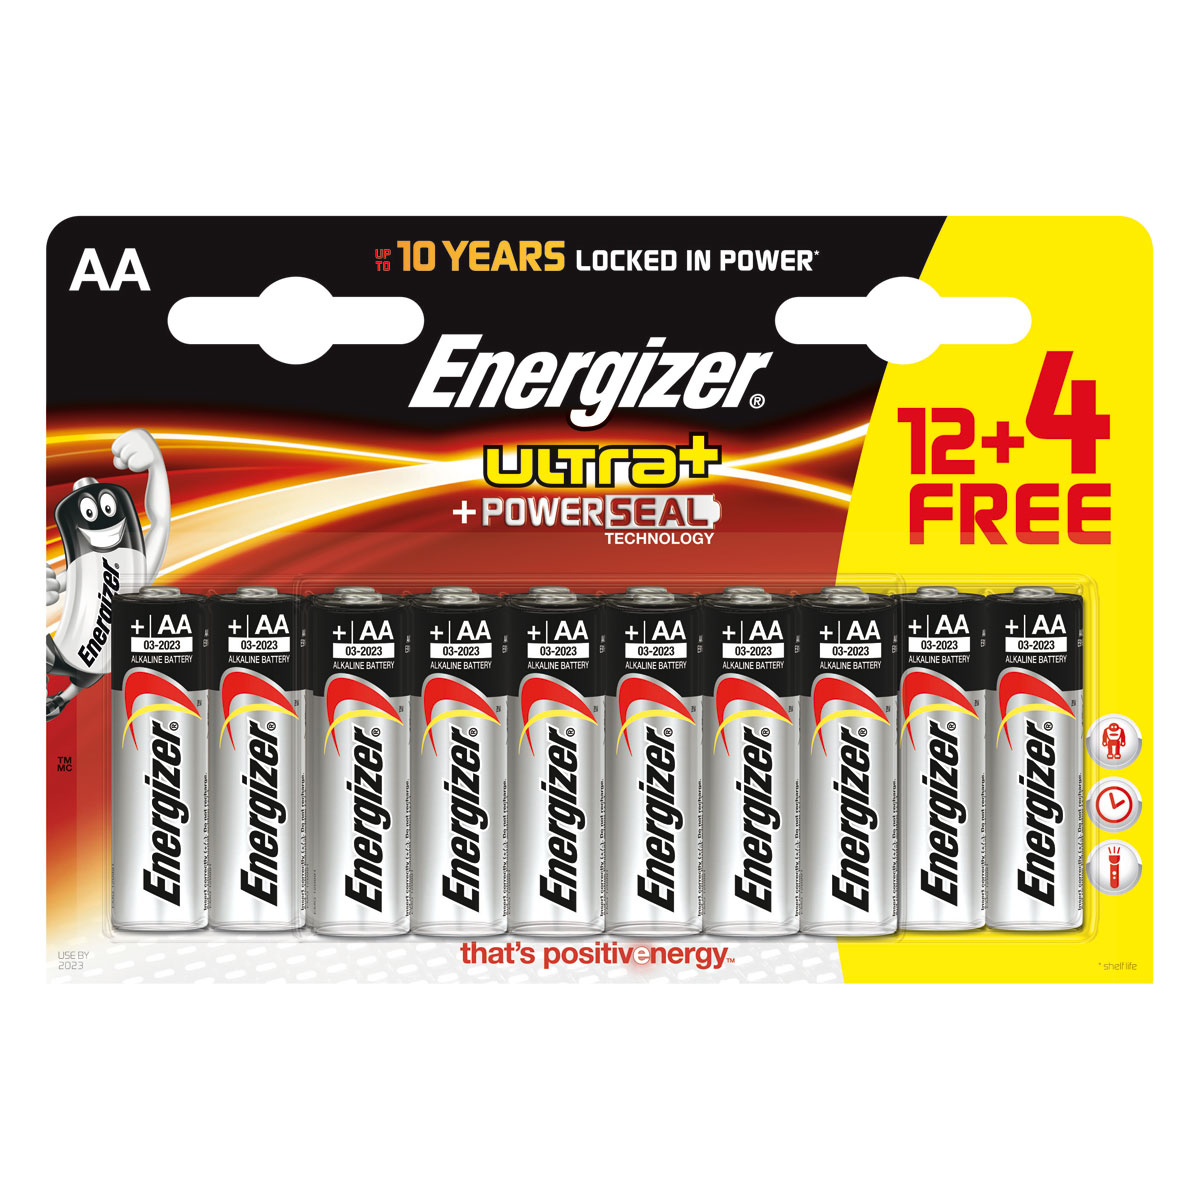 energizer ultra powerseal 12 piles 4 gratuites aa lr6 pile chargeur energizer sur. Black Bedroom Furniture Sets. Home Design Ideas